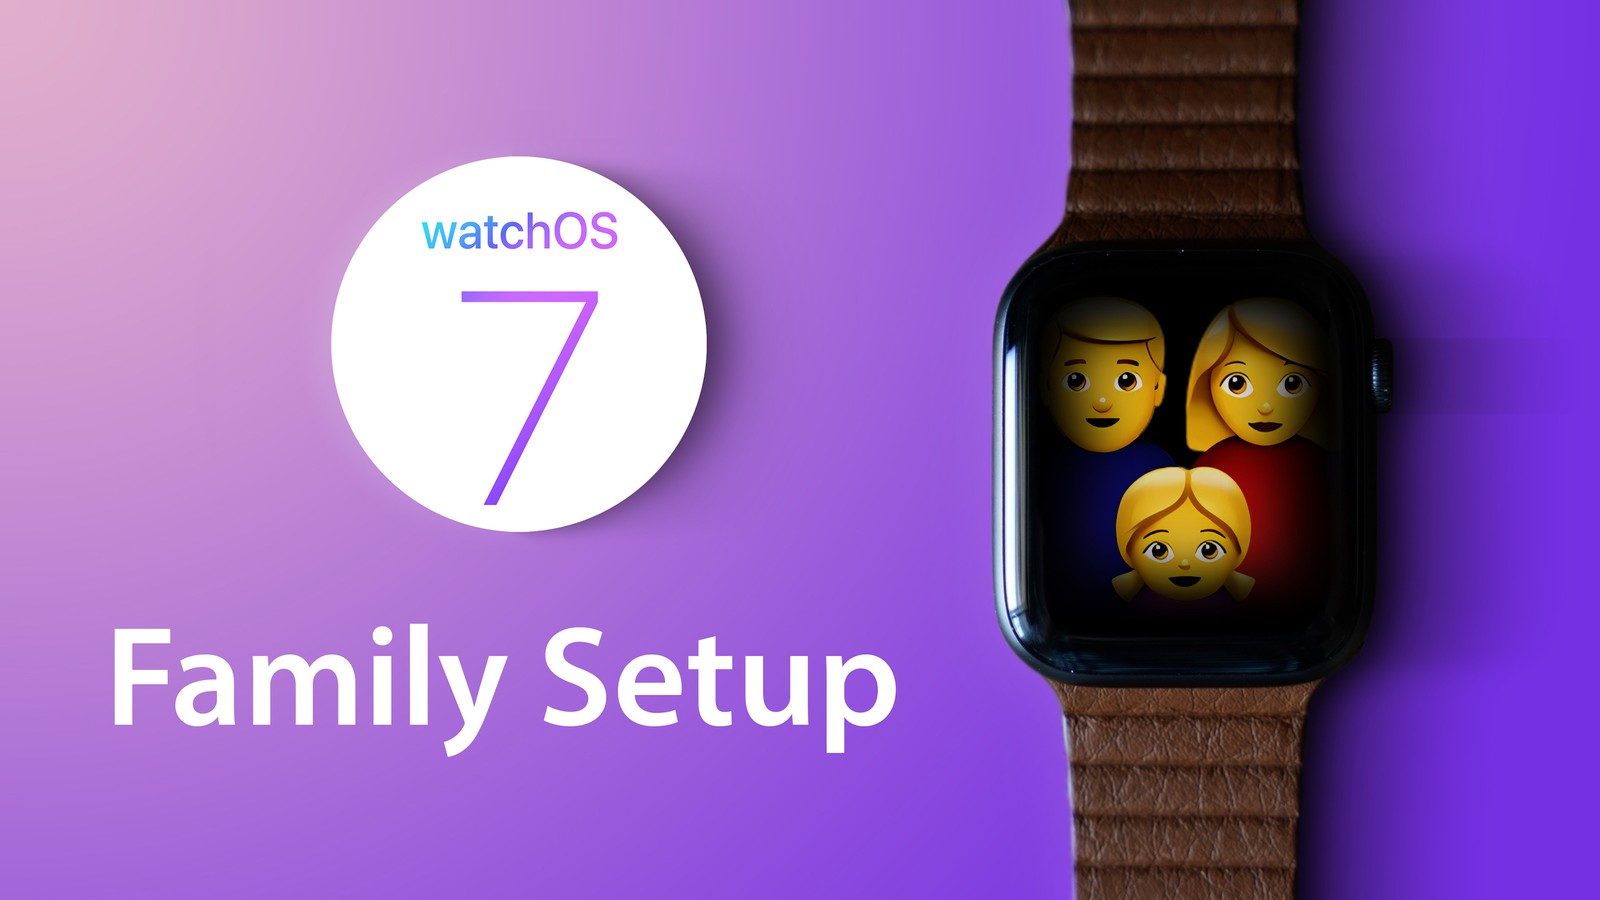 watchOS7-tips-family-setup.jpg